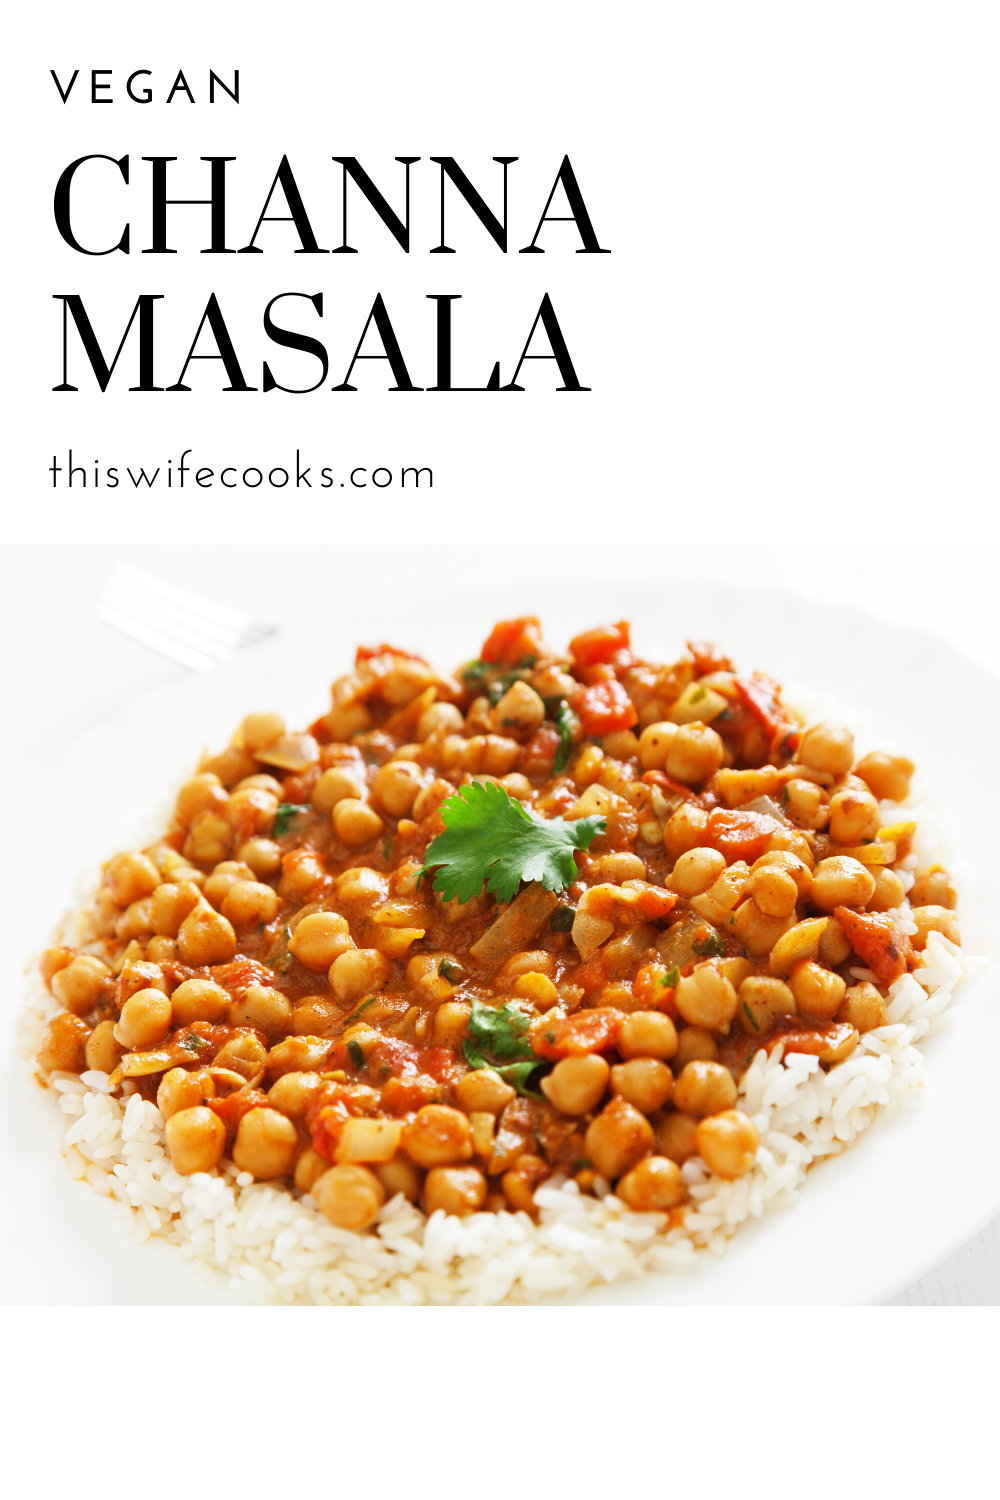 Vegan Channa Masala - This hearty and satisfying vegan version of the Indian classic is ready to serve in around 30 minutes! via @thiswifecooks